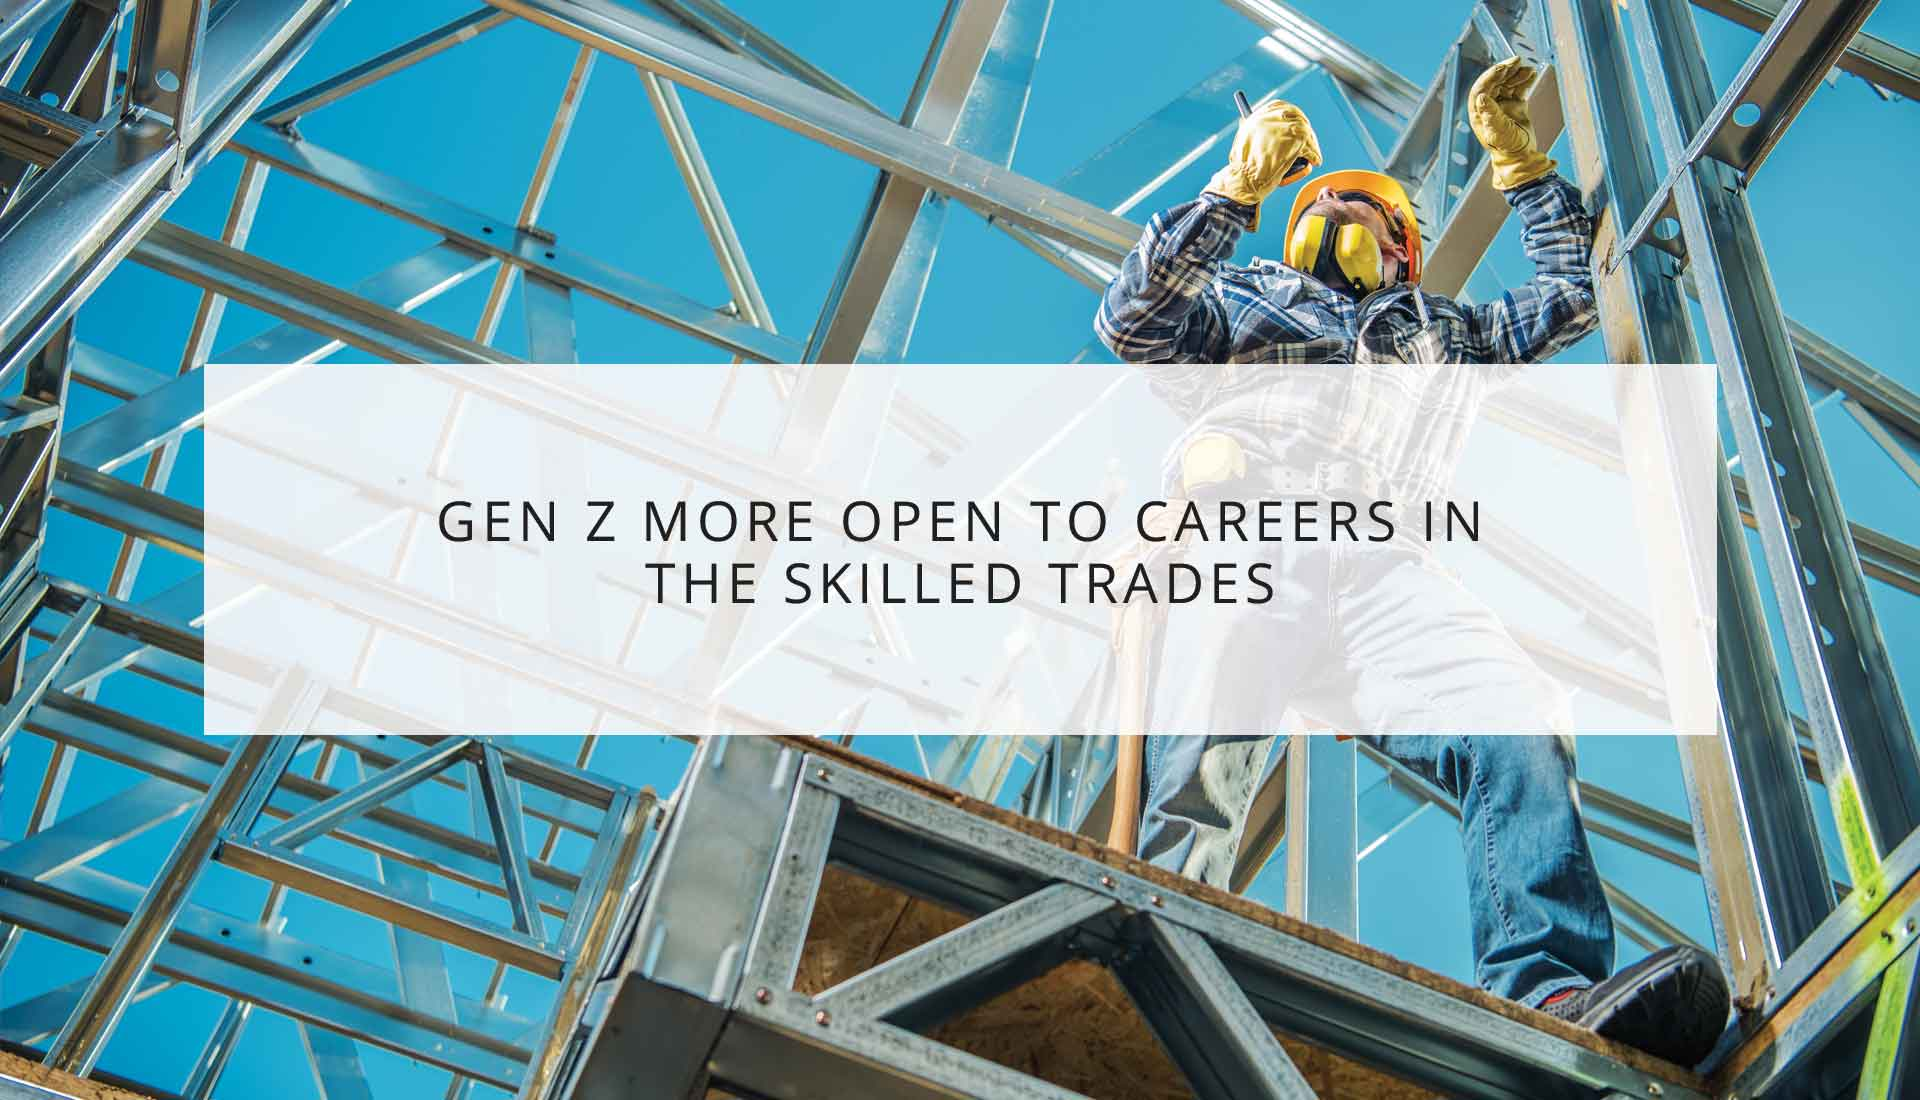 Gen Z More Open to Careers in the Skilled Trades